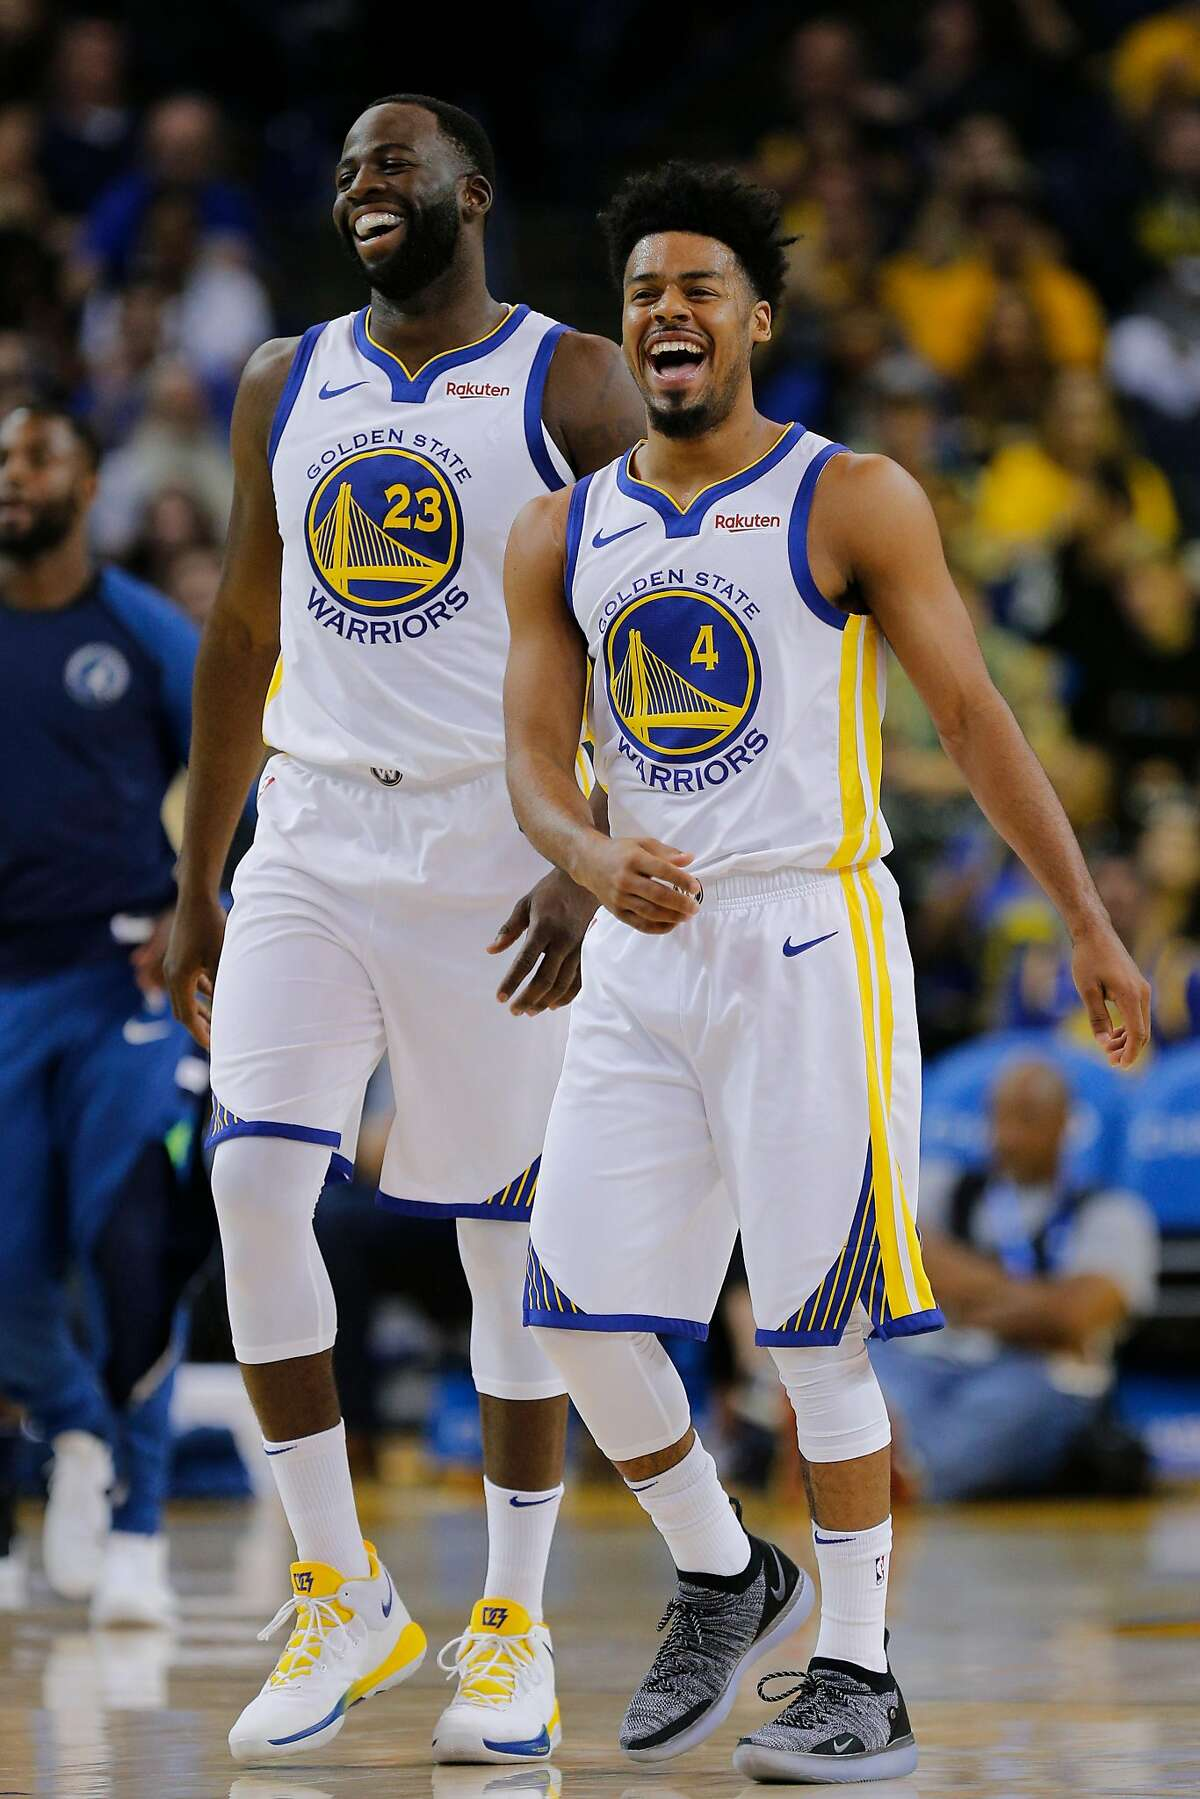 Golden State Warriors forward Draymond Green (23) and guard Quinn Cook (4) share a laugh at a timeout during the first half of an NBA preseason game between the Golden State Warriors and Minnesota Timberwolves at Oracle Arena on Saturday, Sept. 29, 2018, in Oakland, Calif.